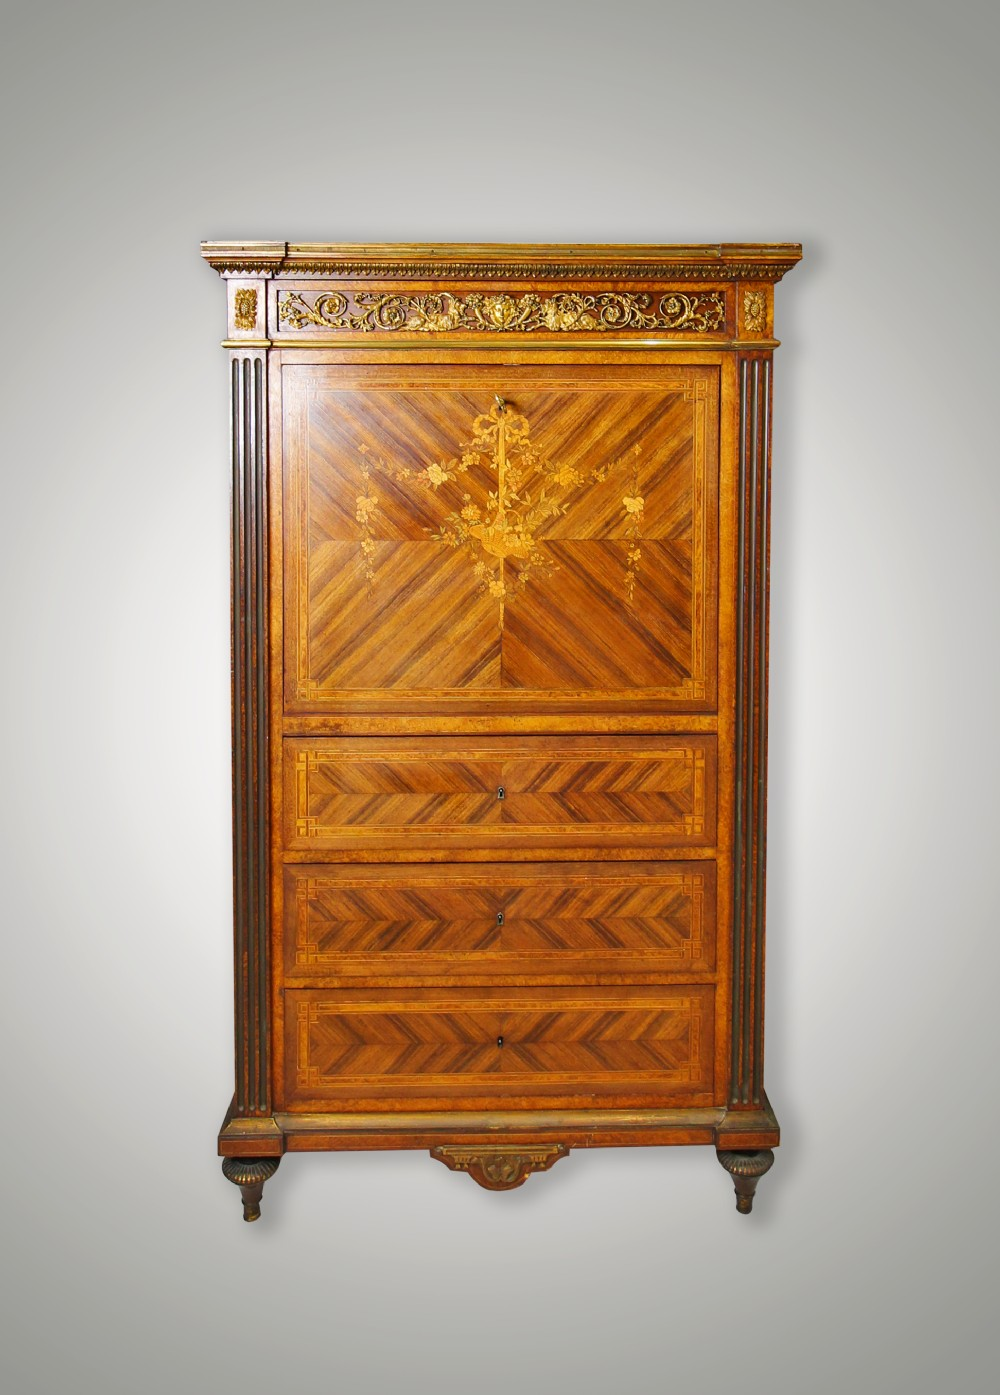 19th century french kingwood marquetry inlaid ormolu mounted secretaire a abattant